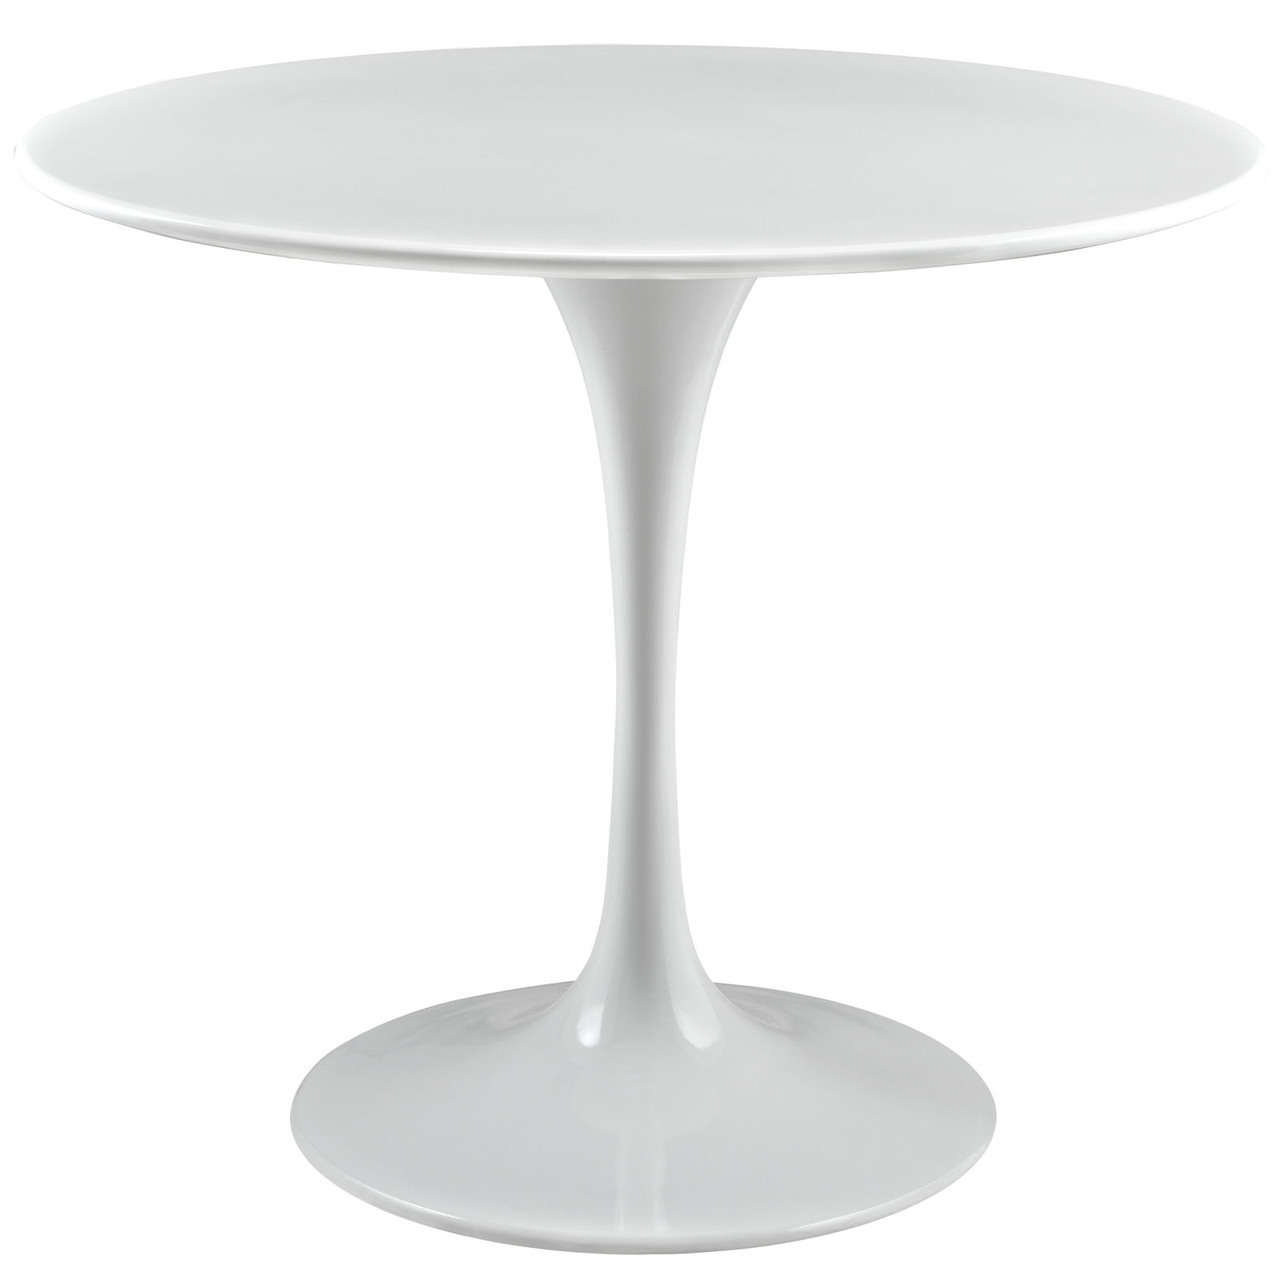 "Lippa 36"" Round Wood Top Dining Table"